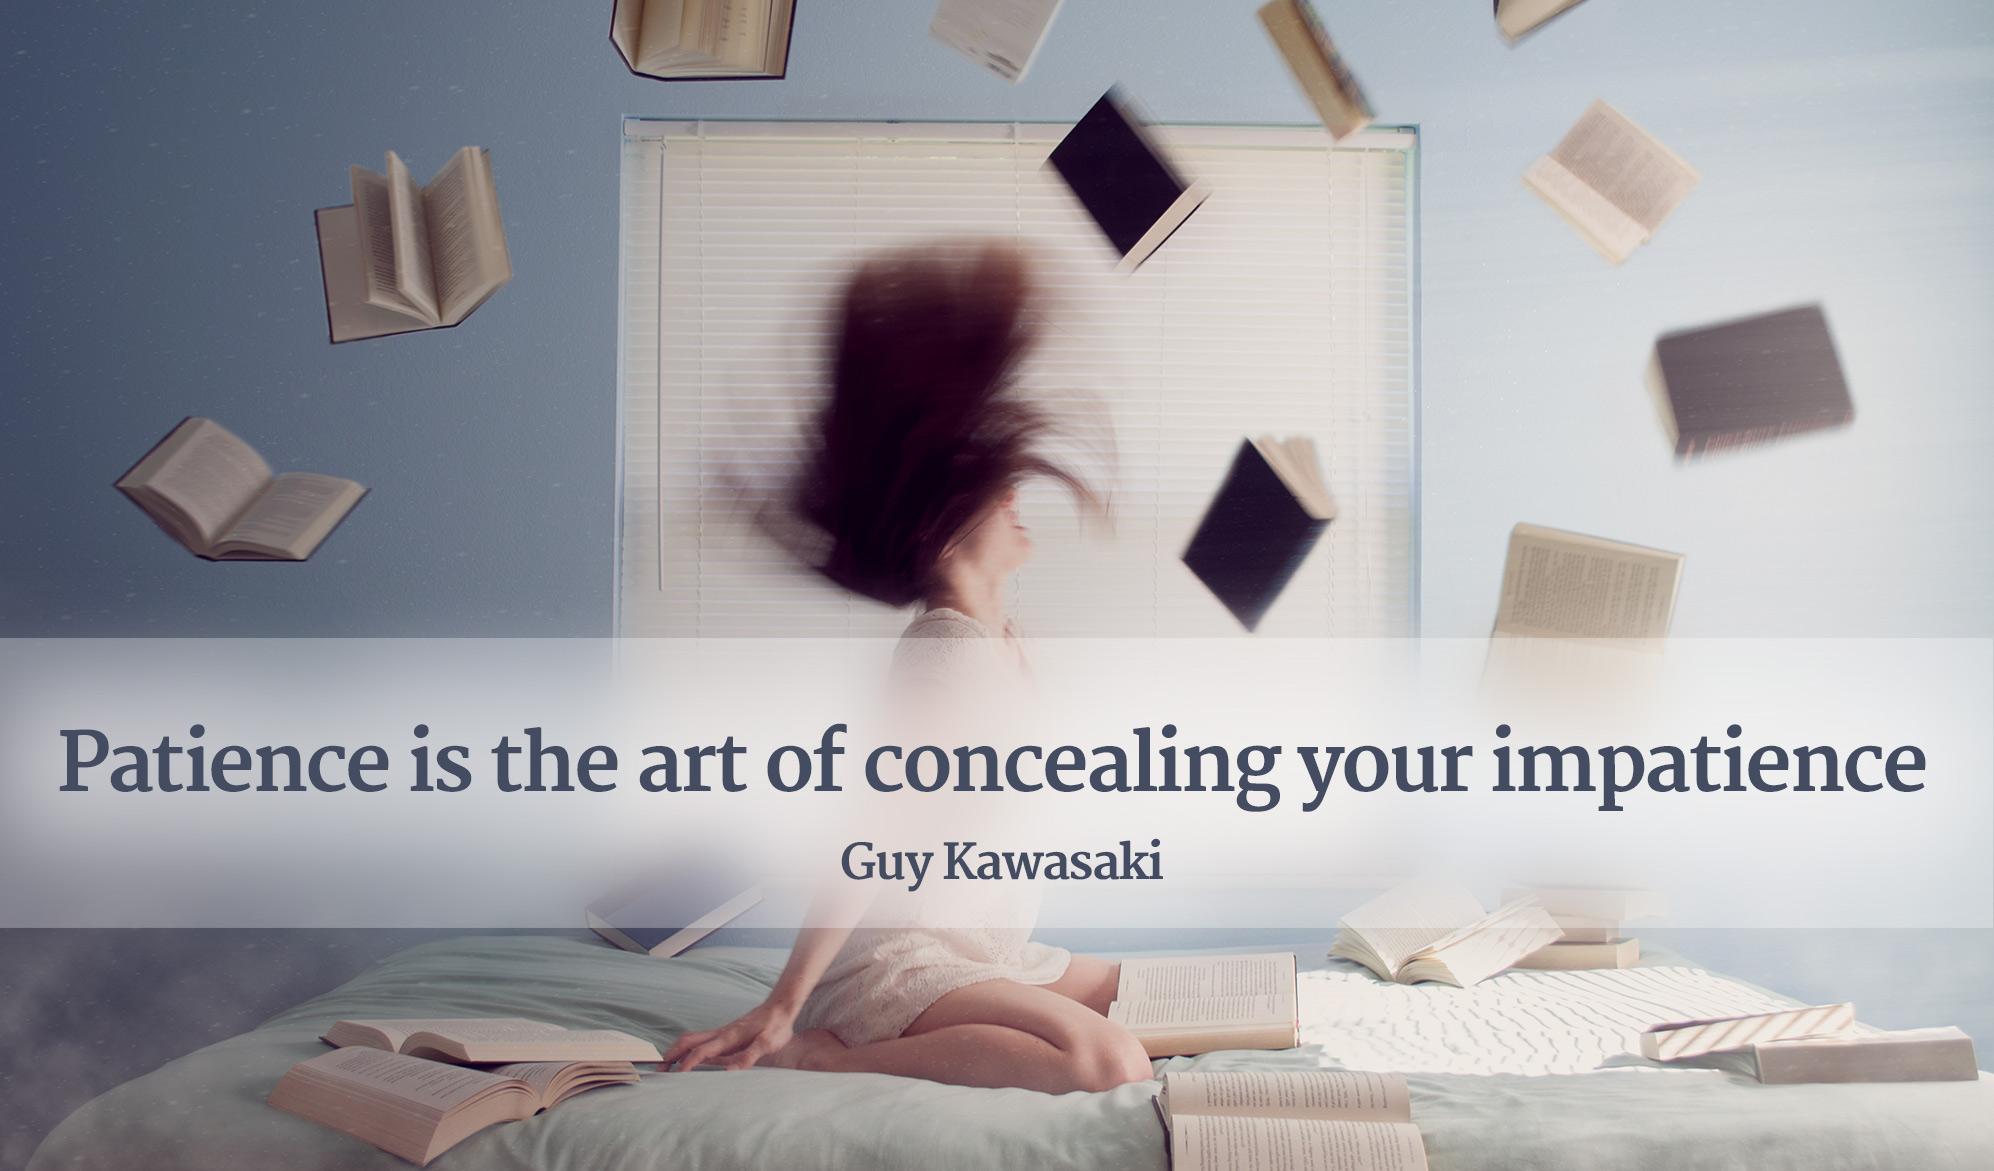 daily inspirational quote image: girl on a bed throwing a bunch of books around